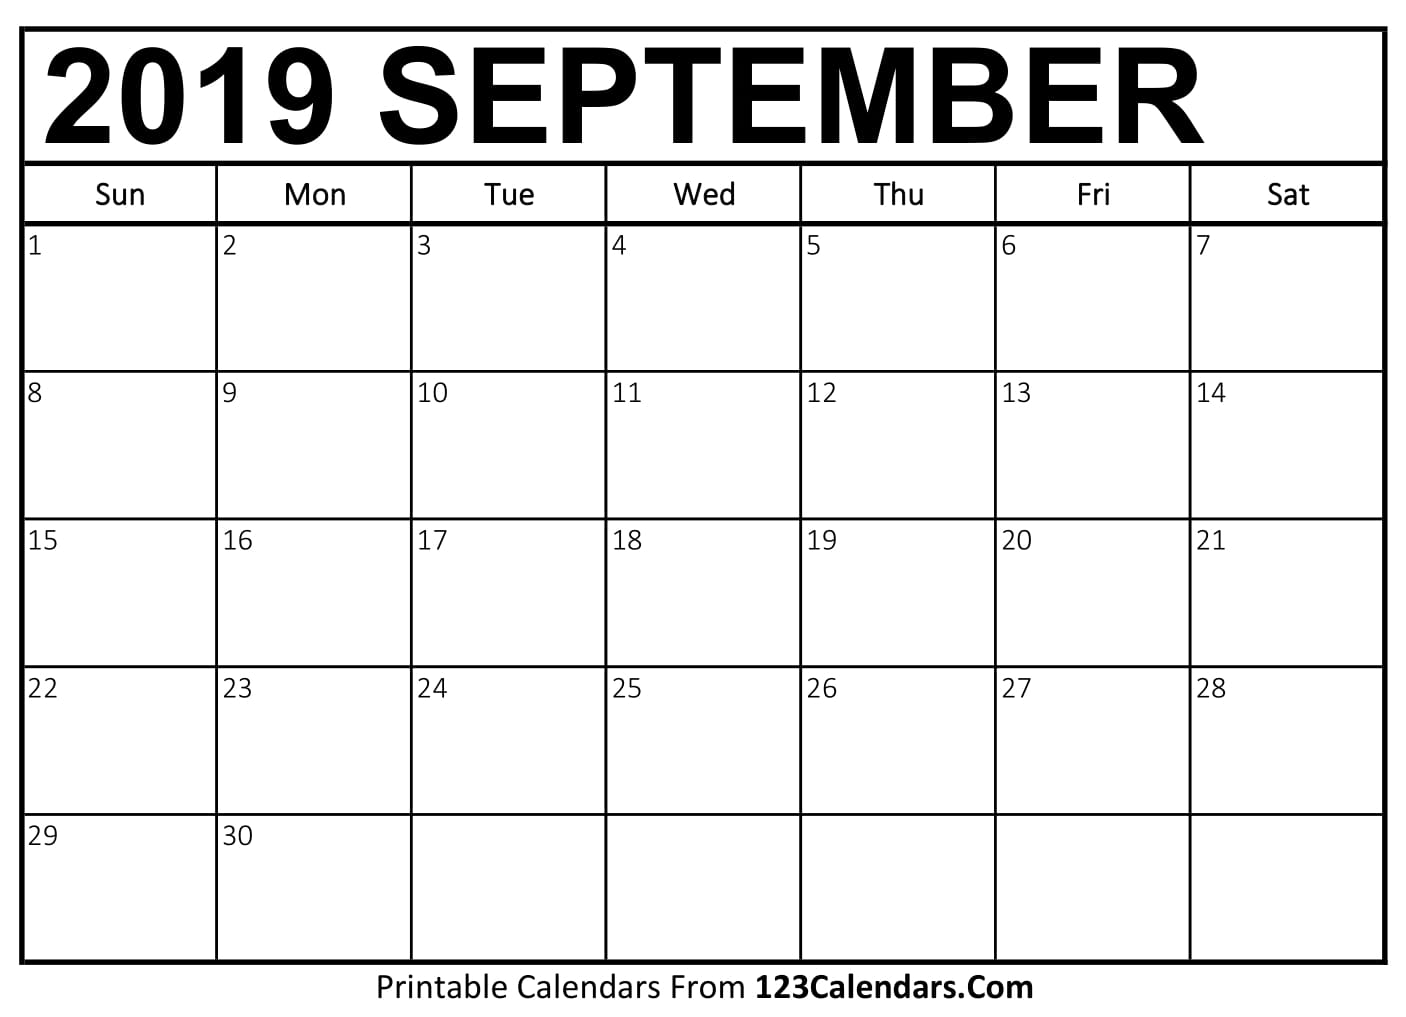 graphic about September Printable Calendar named September 2019 Printable Calendar